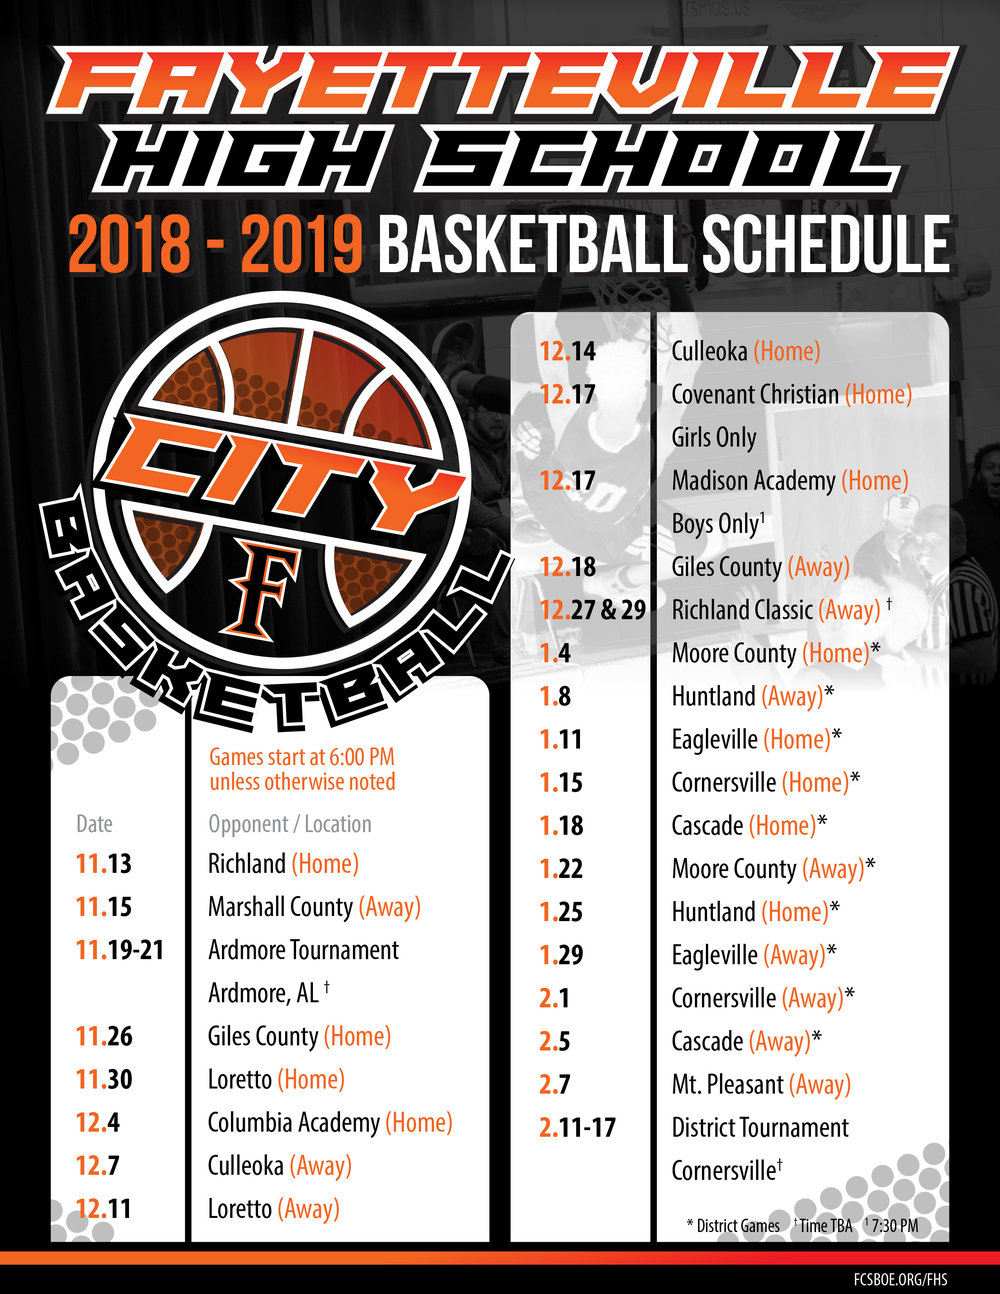 Basketball Schedule 2018-2019-01.jpg